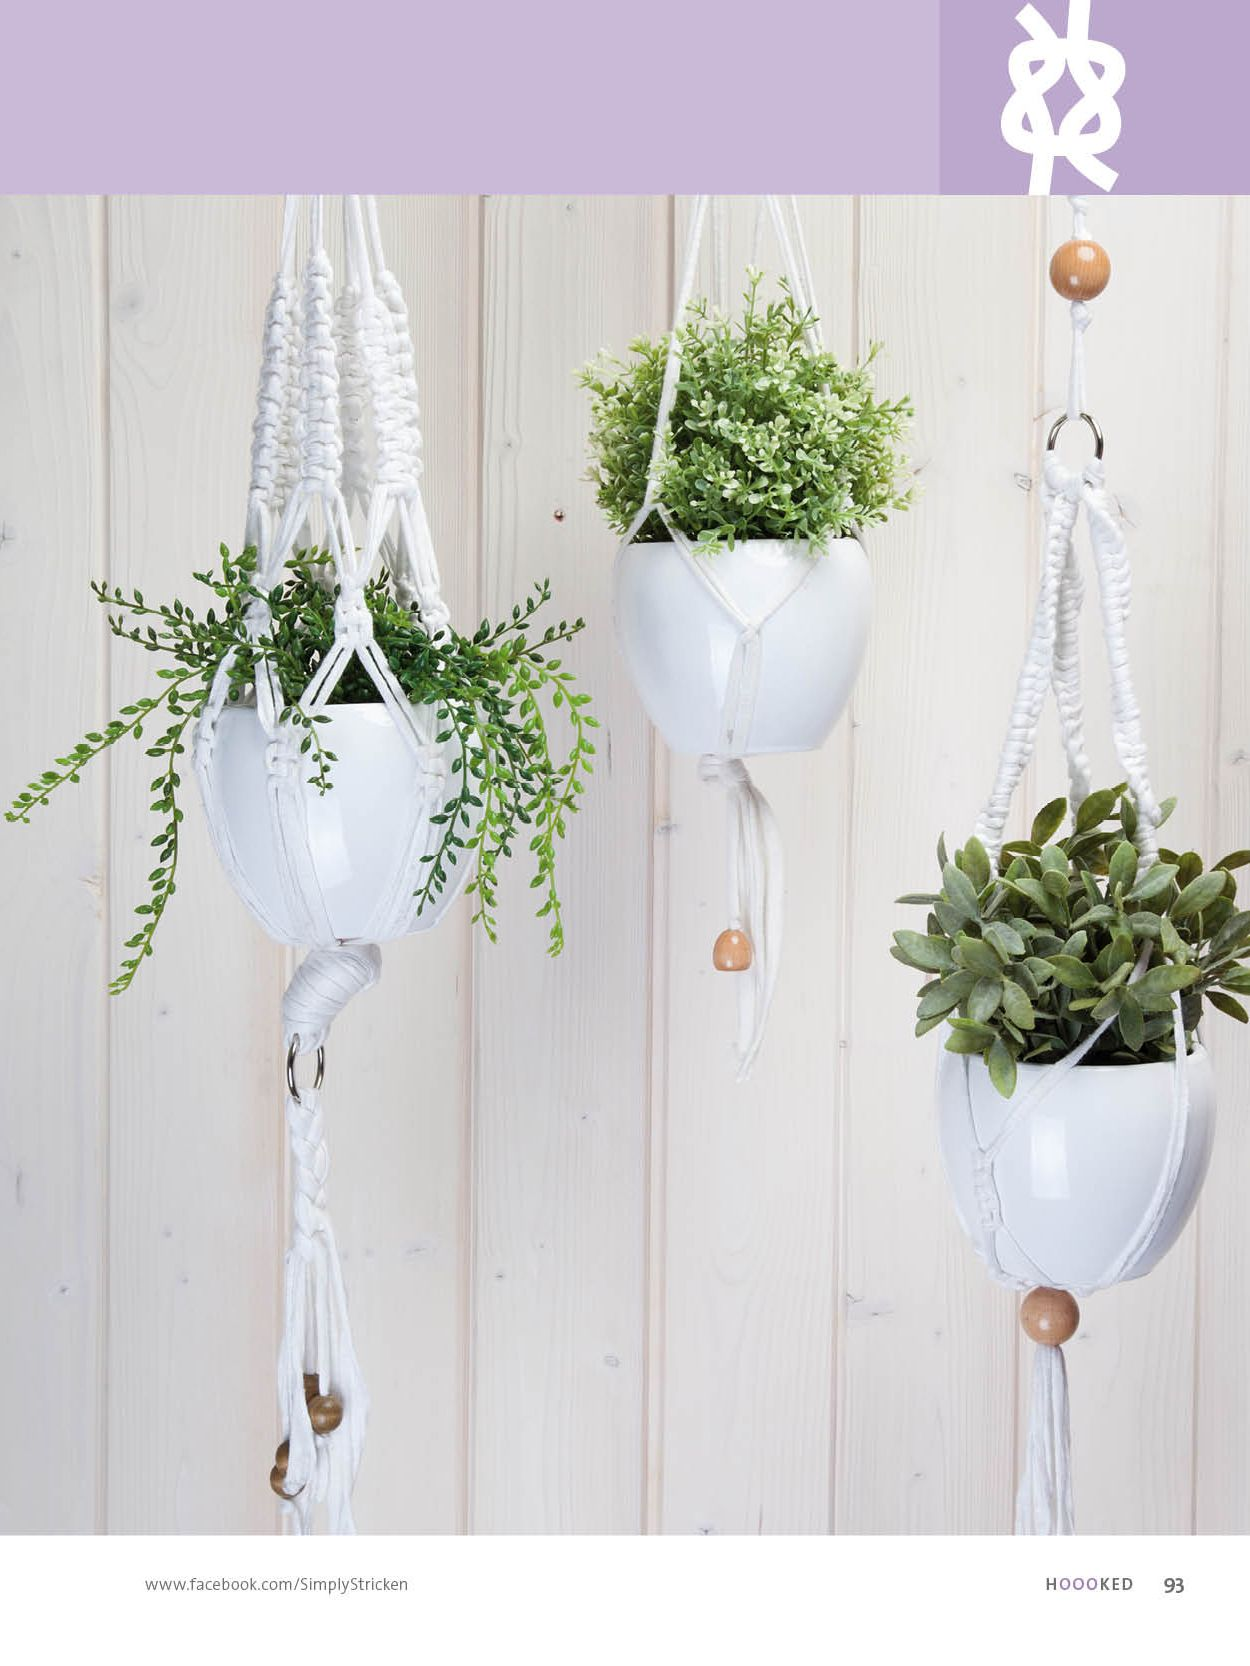 Wall Hangings, Diy Projects, Craft Ideas, Interior, Macrame Plant Hangers,